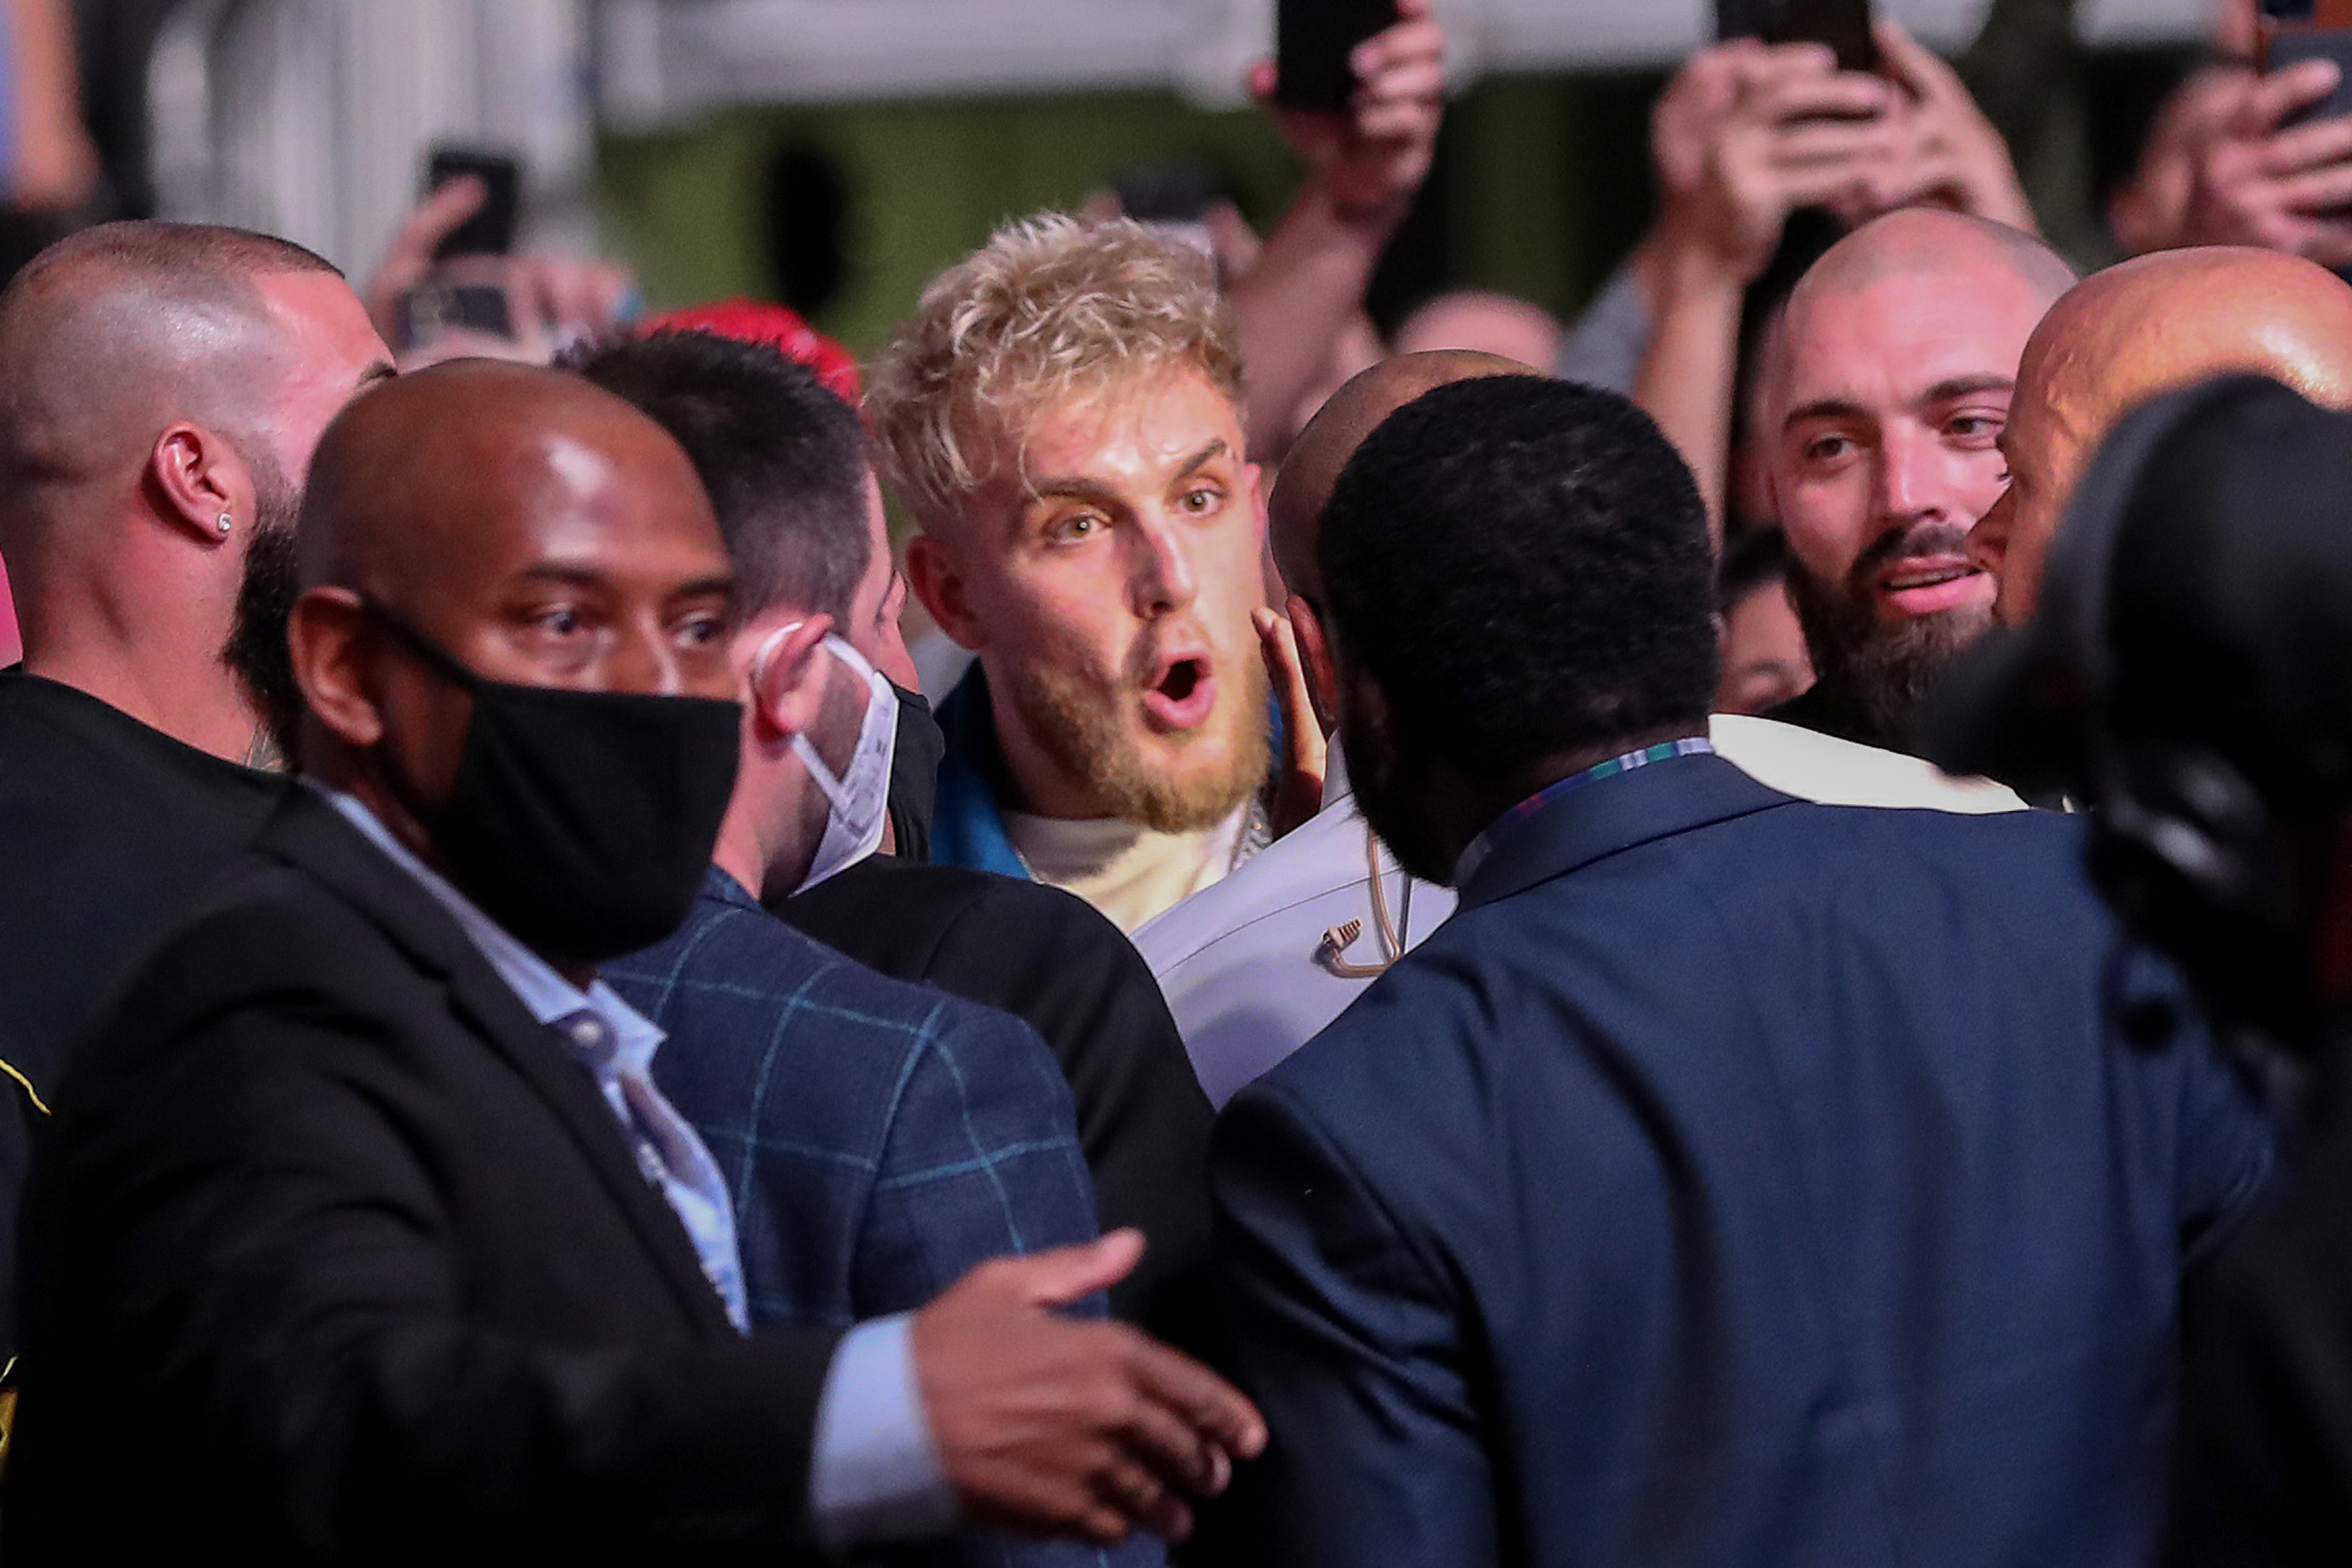 Jake Paul and Daniel Cormier come face to face at UFC 261 for no good reason at UFC 261 in Jacksonville, Florida.